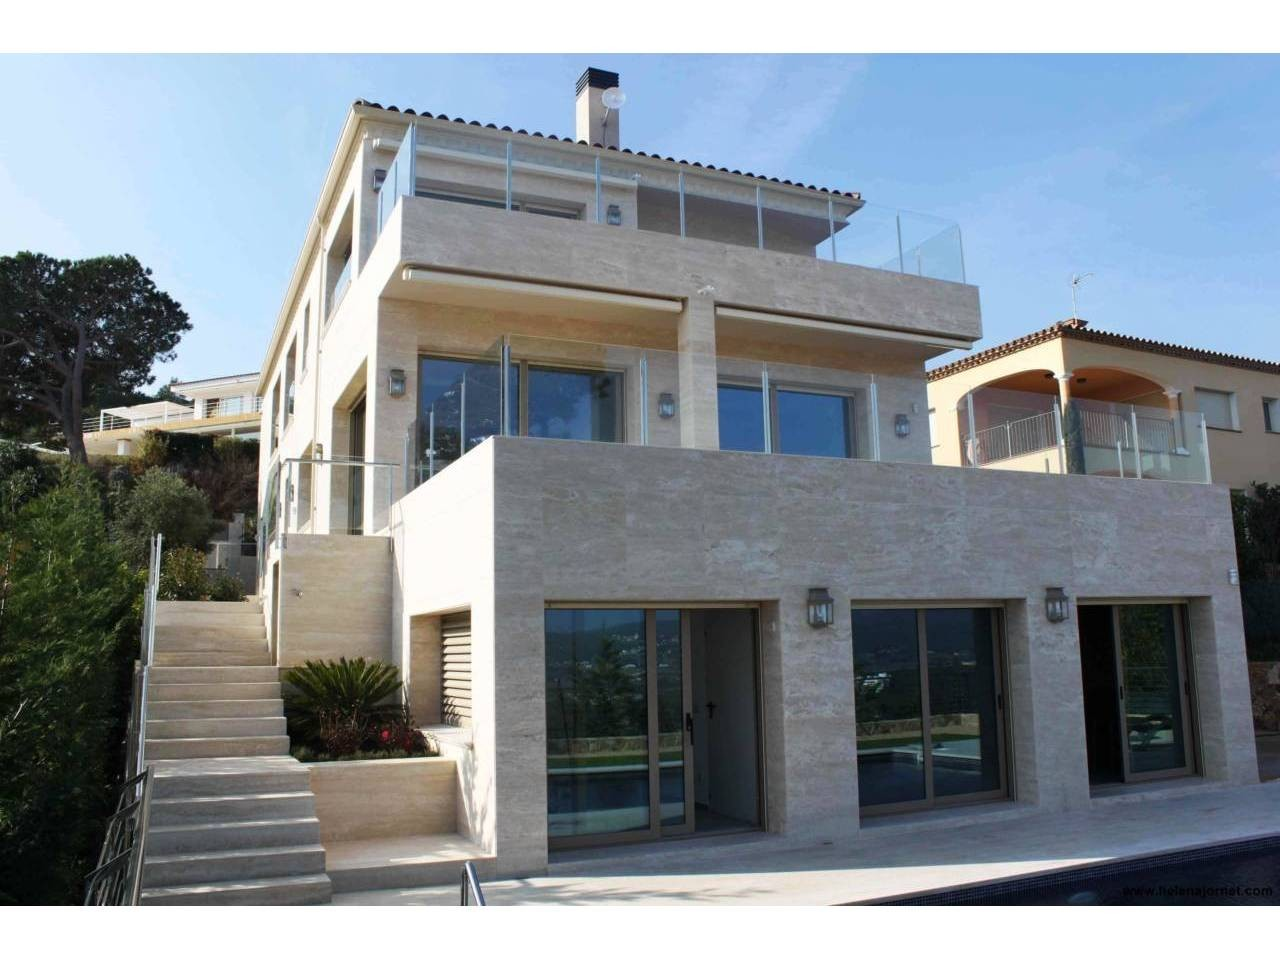 Wonderful luxury house with outdoor and indoor swimming pools and two large terraces with views - 20033